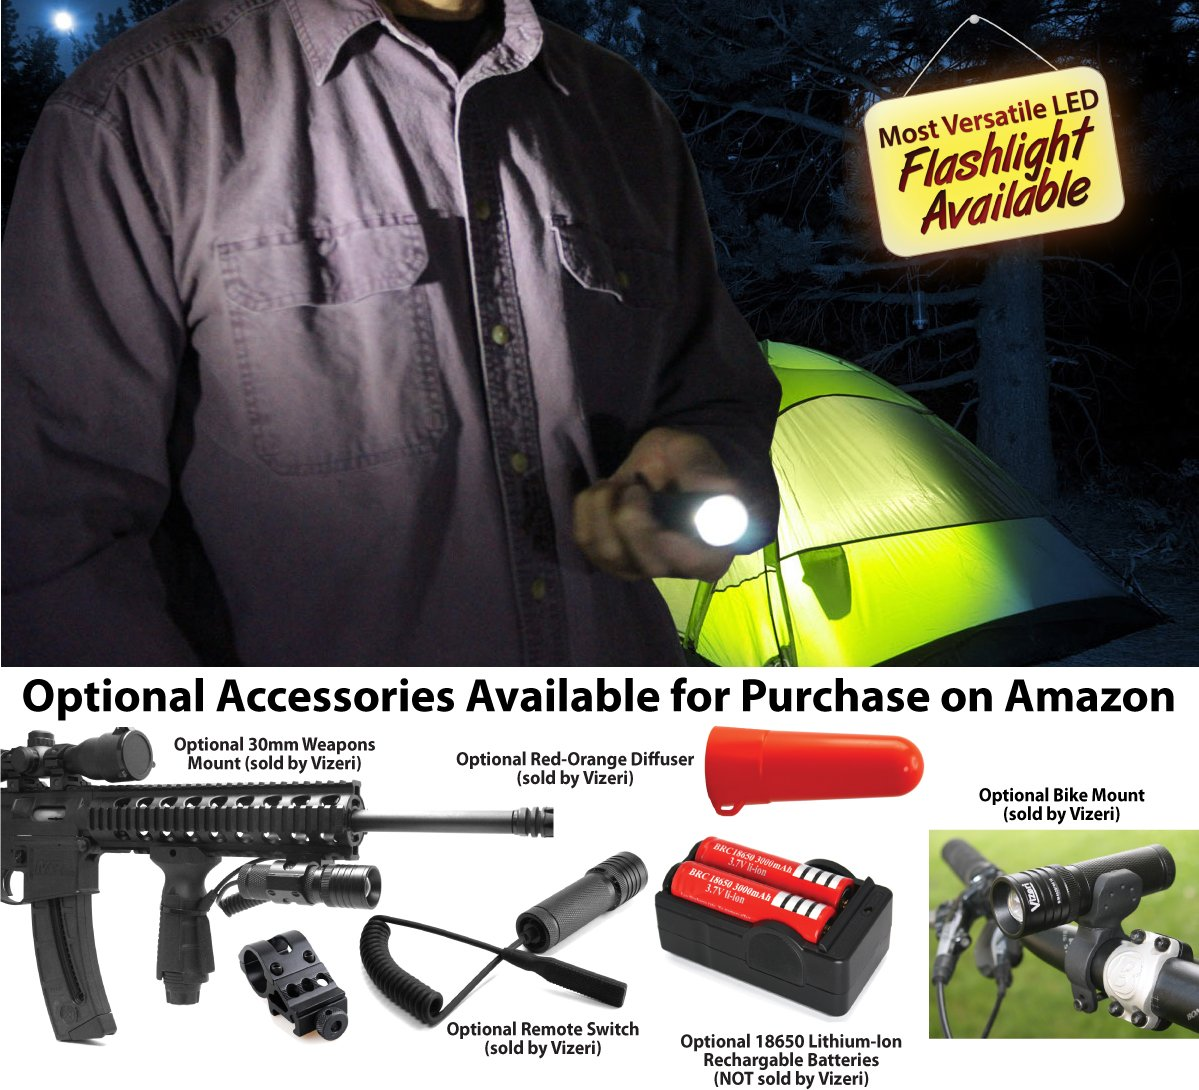 Vizeri LED Tactical Flashlight Cree XML T6 or XRE Q5, Military Quality Review : Vizeri VZ460, VZ230